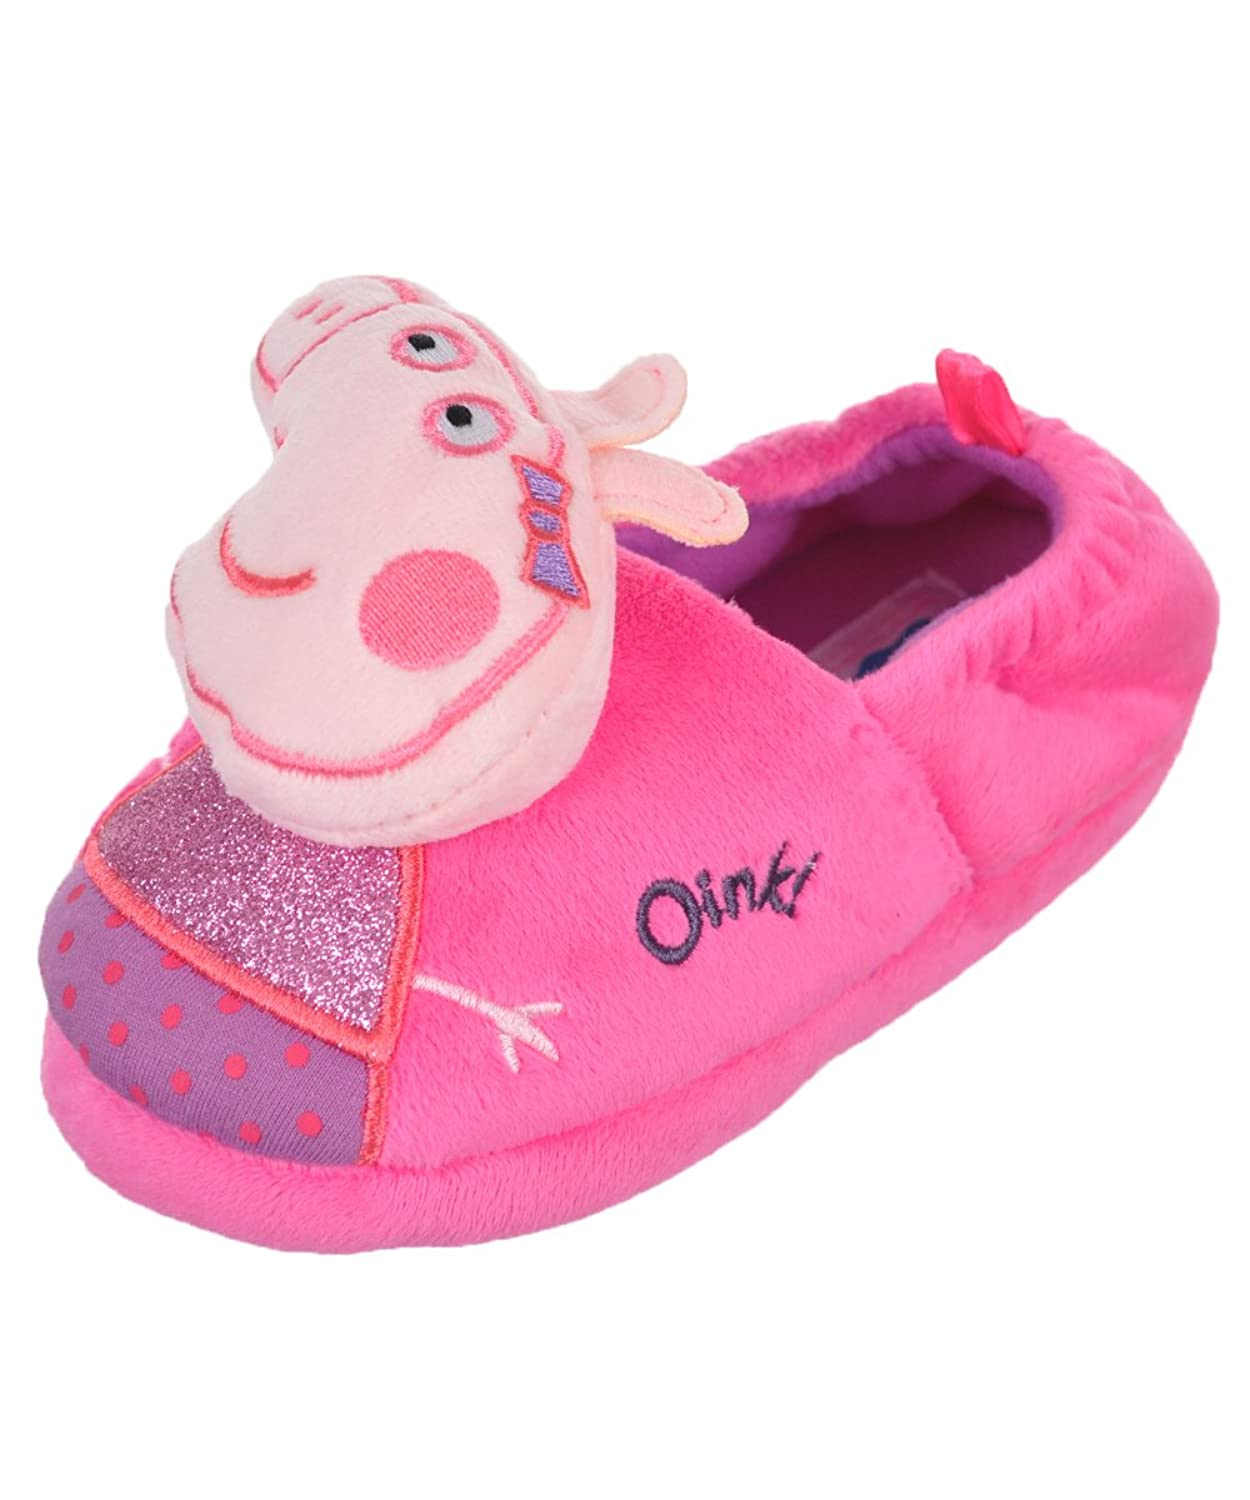 Acorn Bedroom Slippers Acorn Nordic Moc Slipper Women S